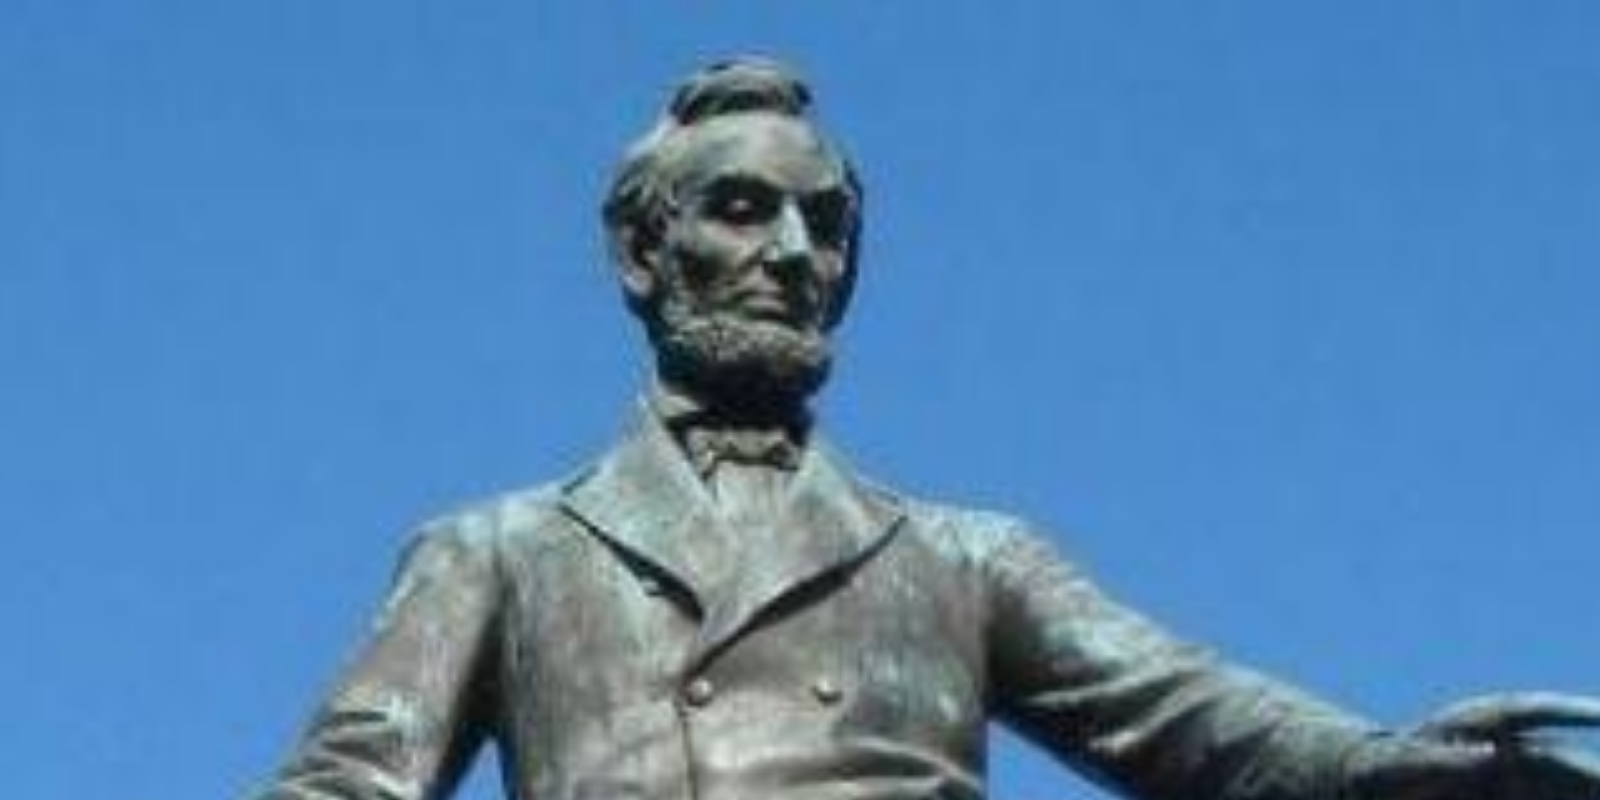 Statue of Lincoln freeing slave taken down in Boston after pressure from 'anti-racism' activists